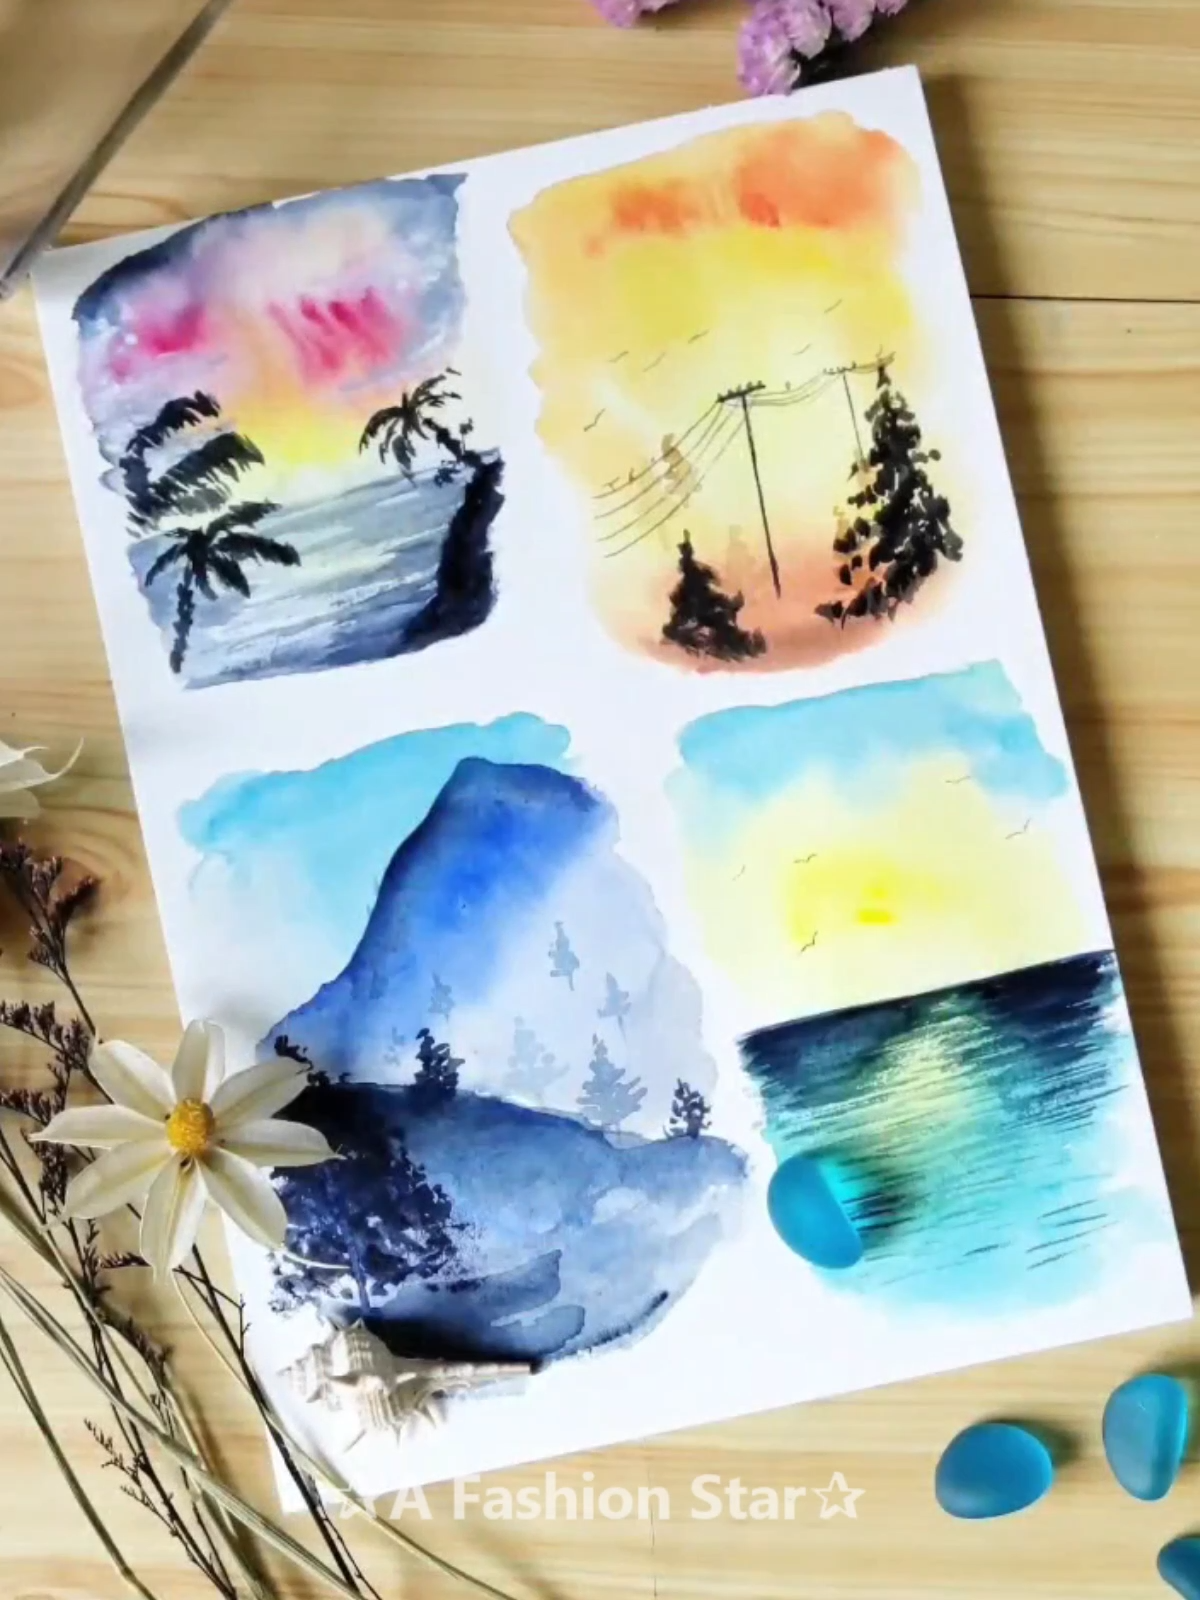 Are You Looking For Easy And Beautiful Watercolor Painting Watercolor Painting Always Presents Beautiful Scenery We Watercolor Paintings Watercolor Drawings